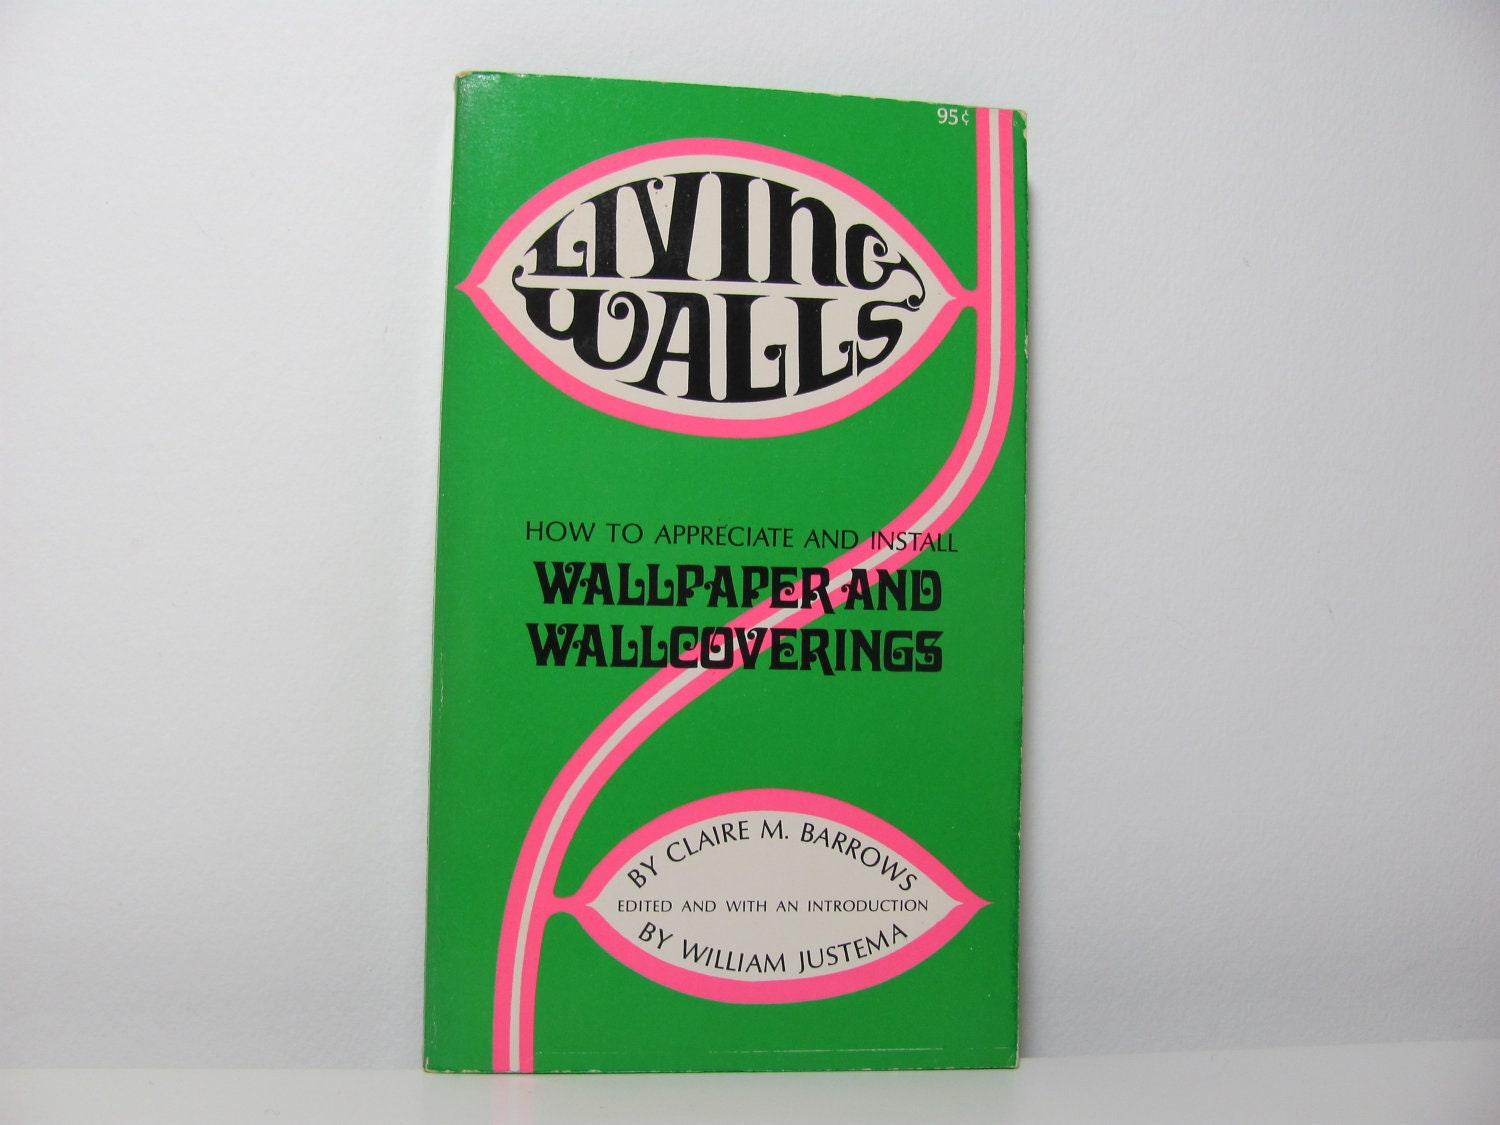 Living Walls: How to Appreciate and Install Wallpaper and Wallcoverings Claire M. Barrows